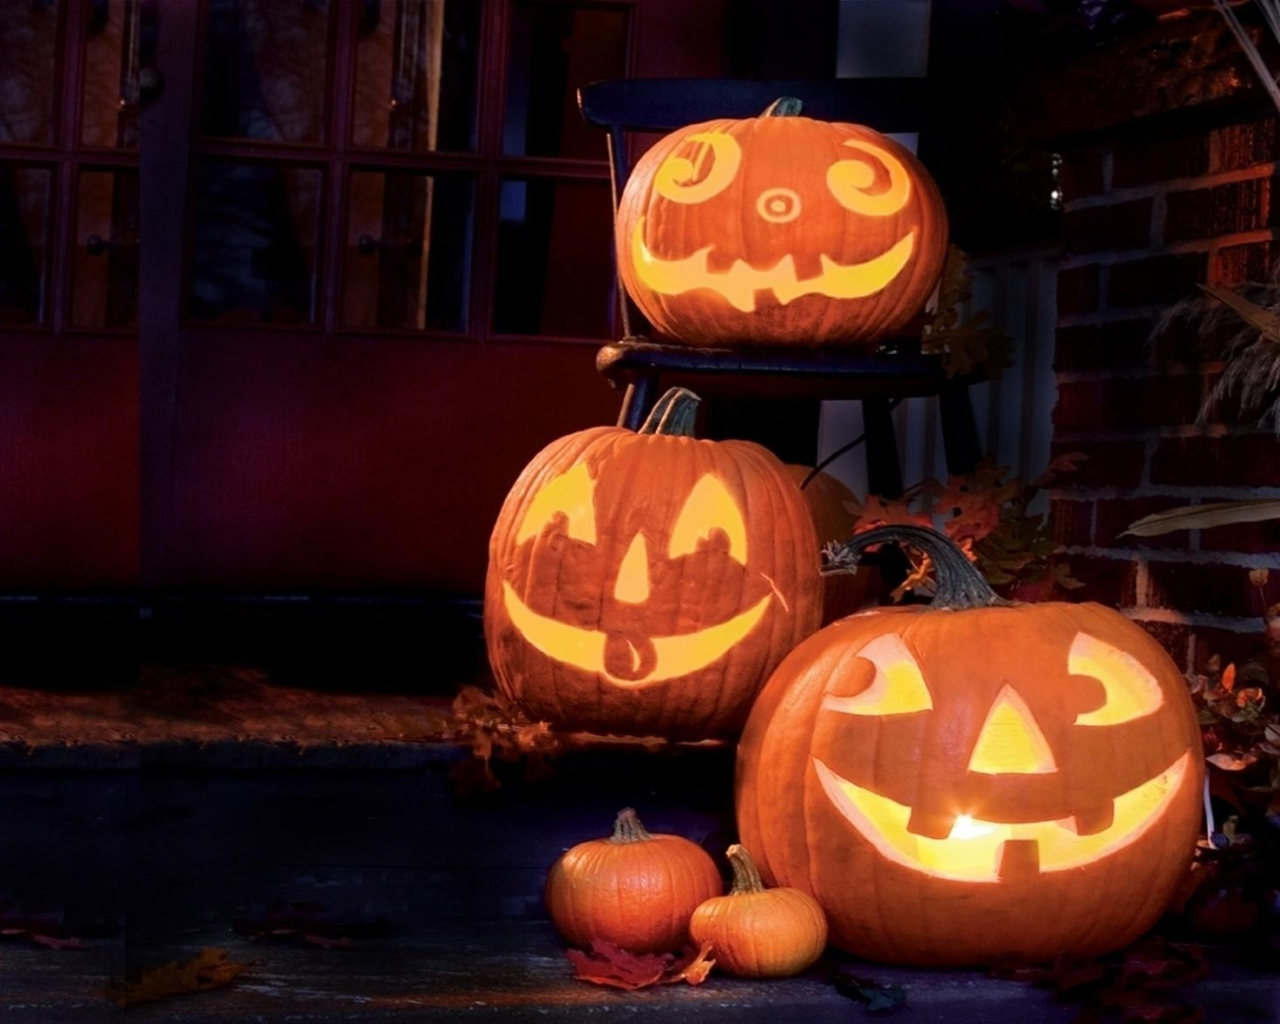 halloween_holiday_pumpkin_faces_smiles_40967_1280x1024